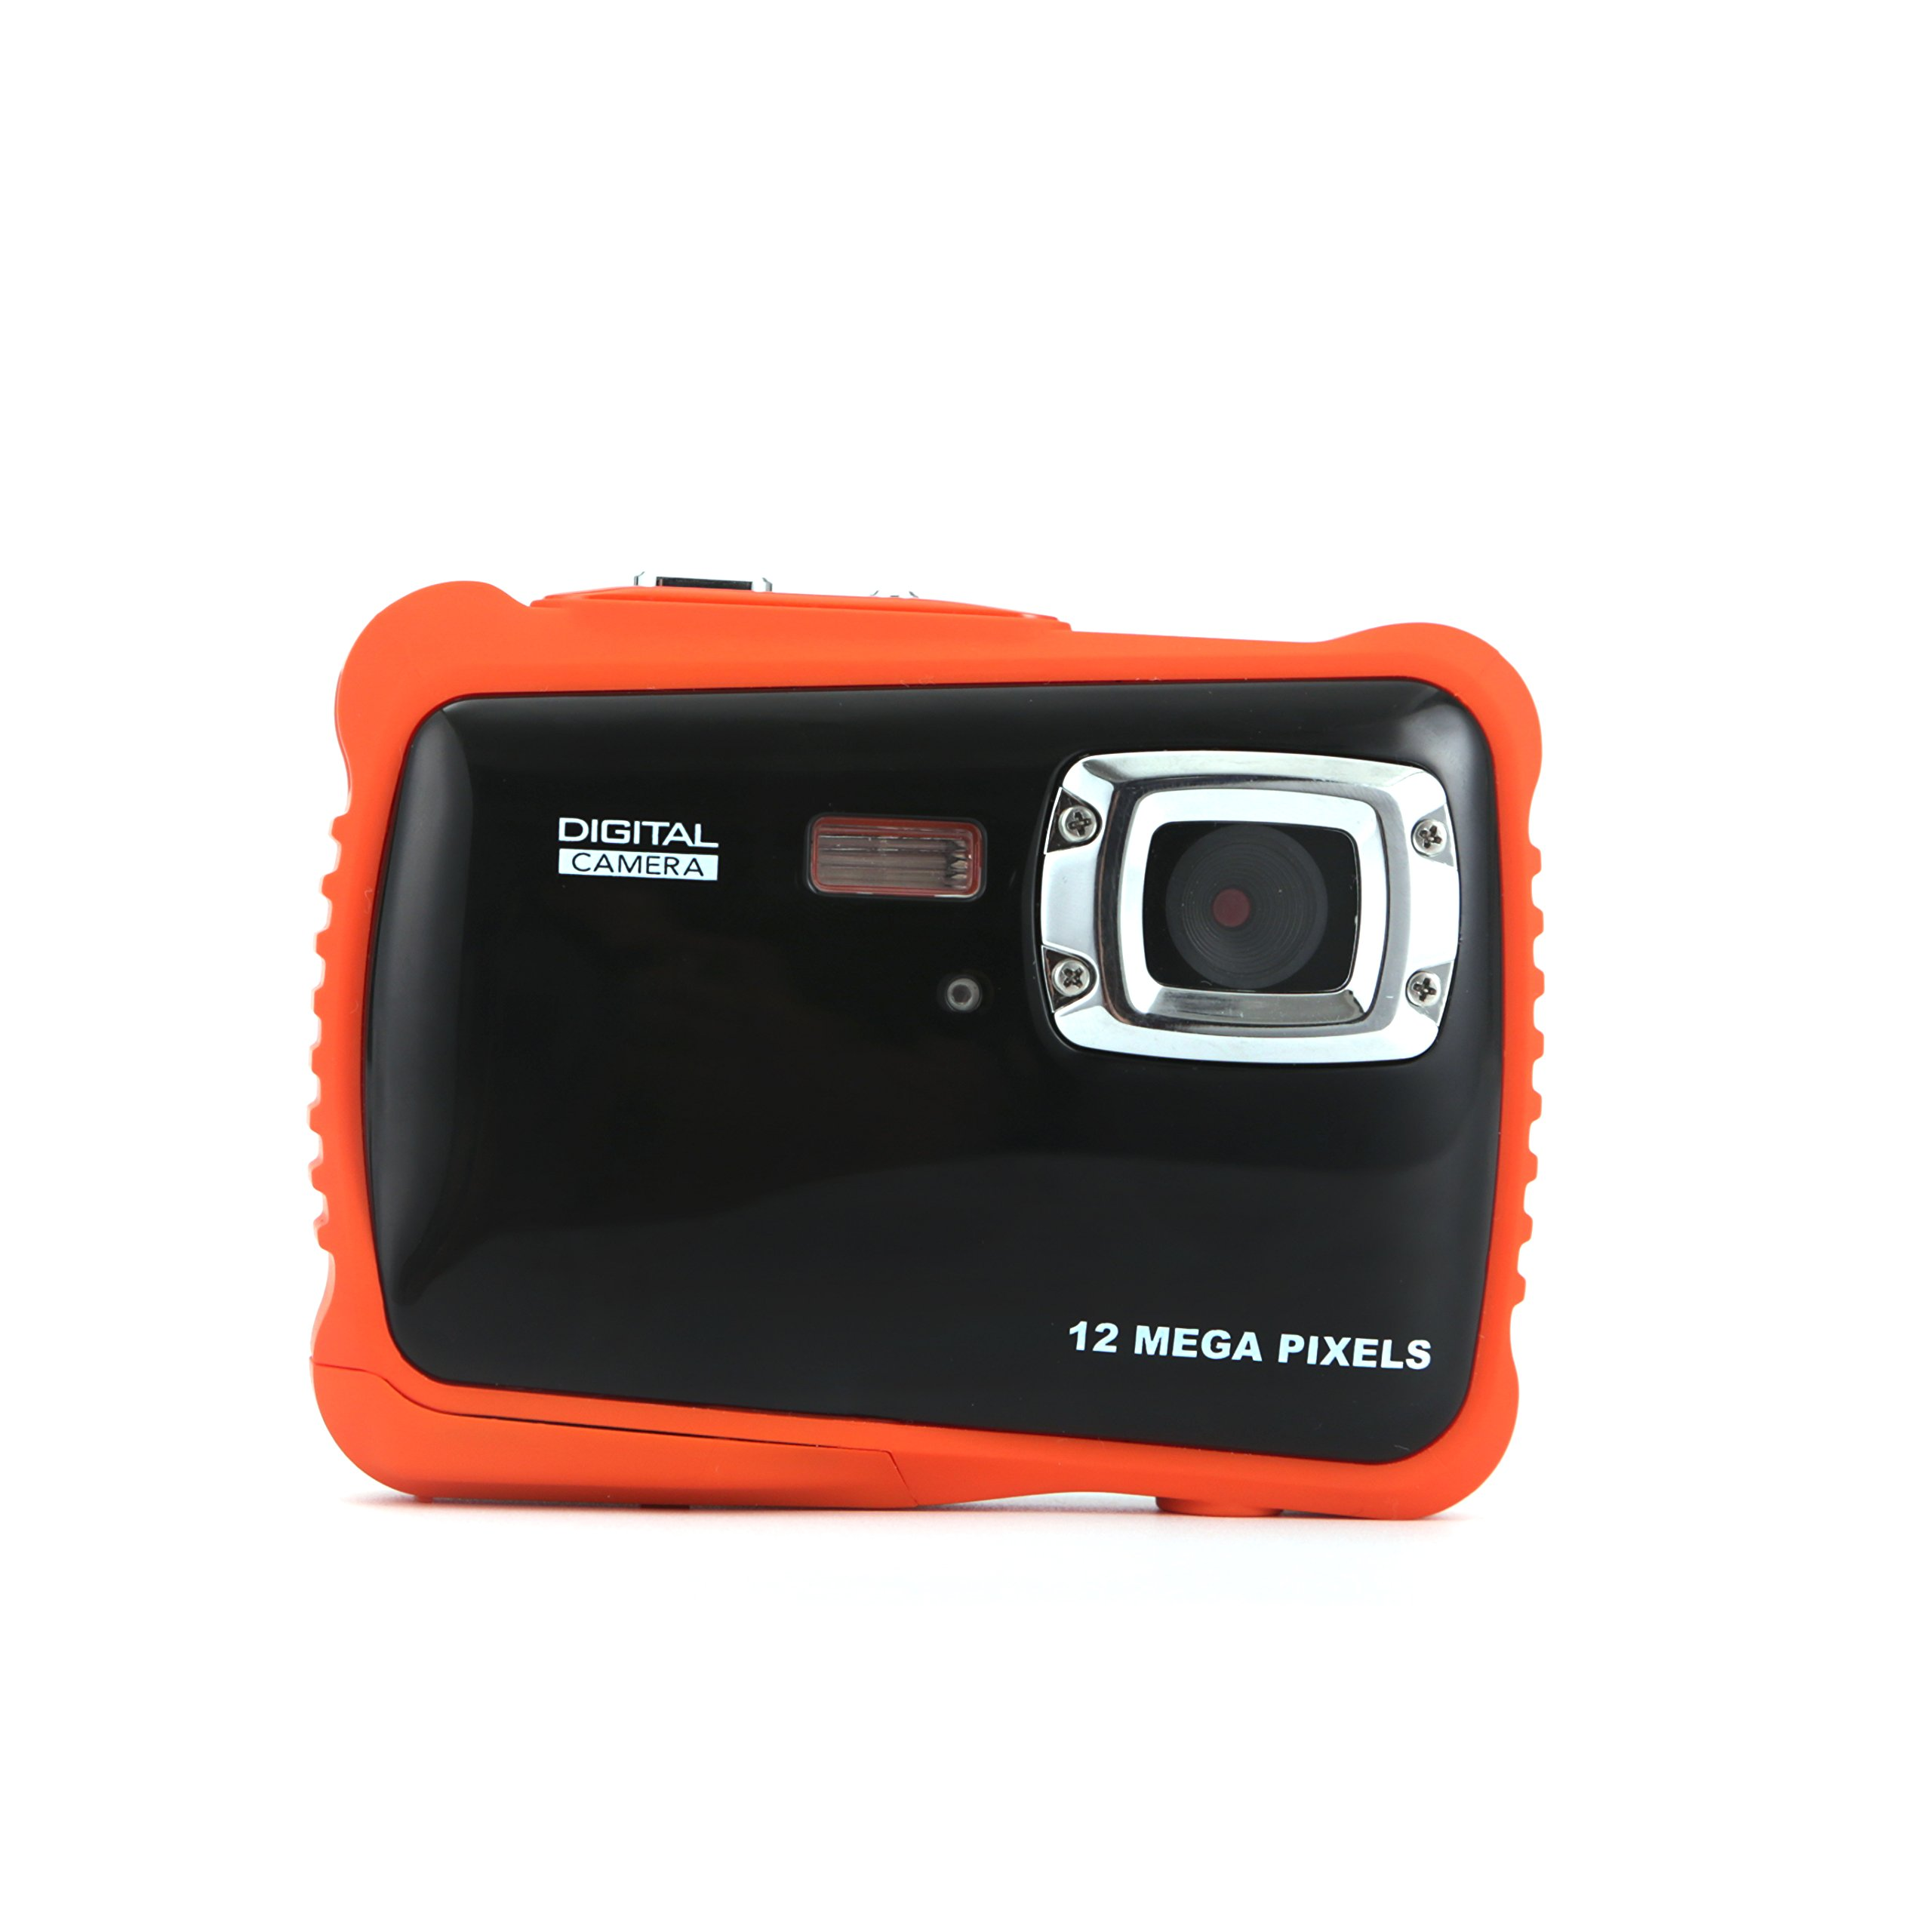 Kids Digital Camera - Waterproof to 3 Meters - HD Video Recorder and 5 Mega Pixels - Shockproof Childrens Camera (Orange) by BAVISION (Image #2)